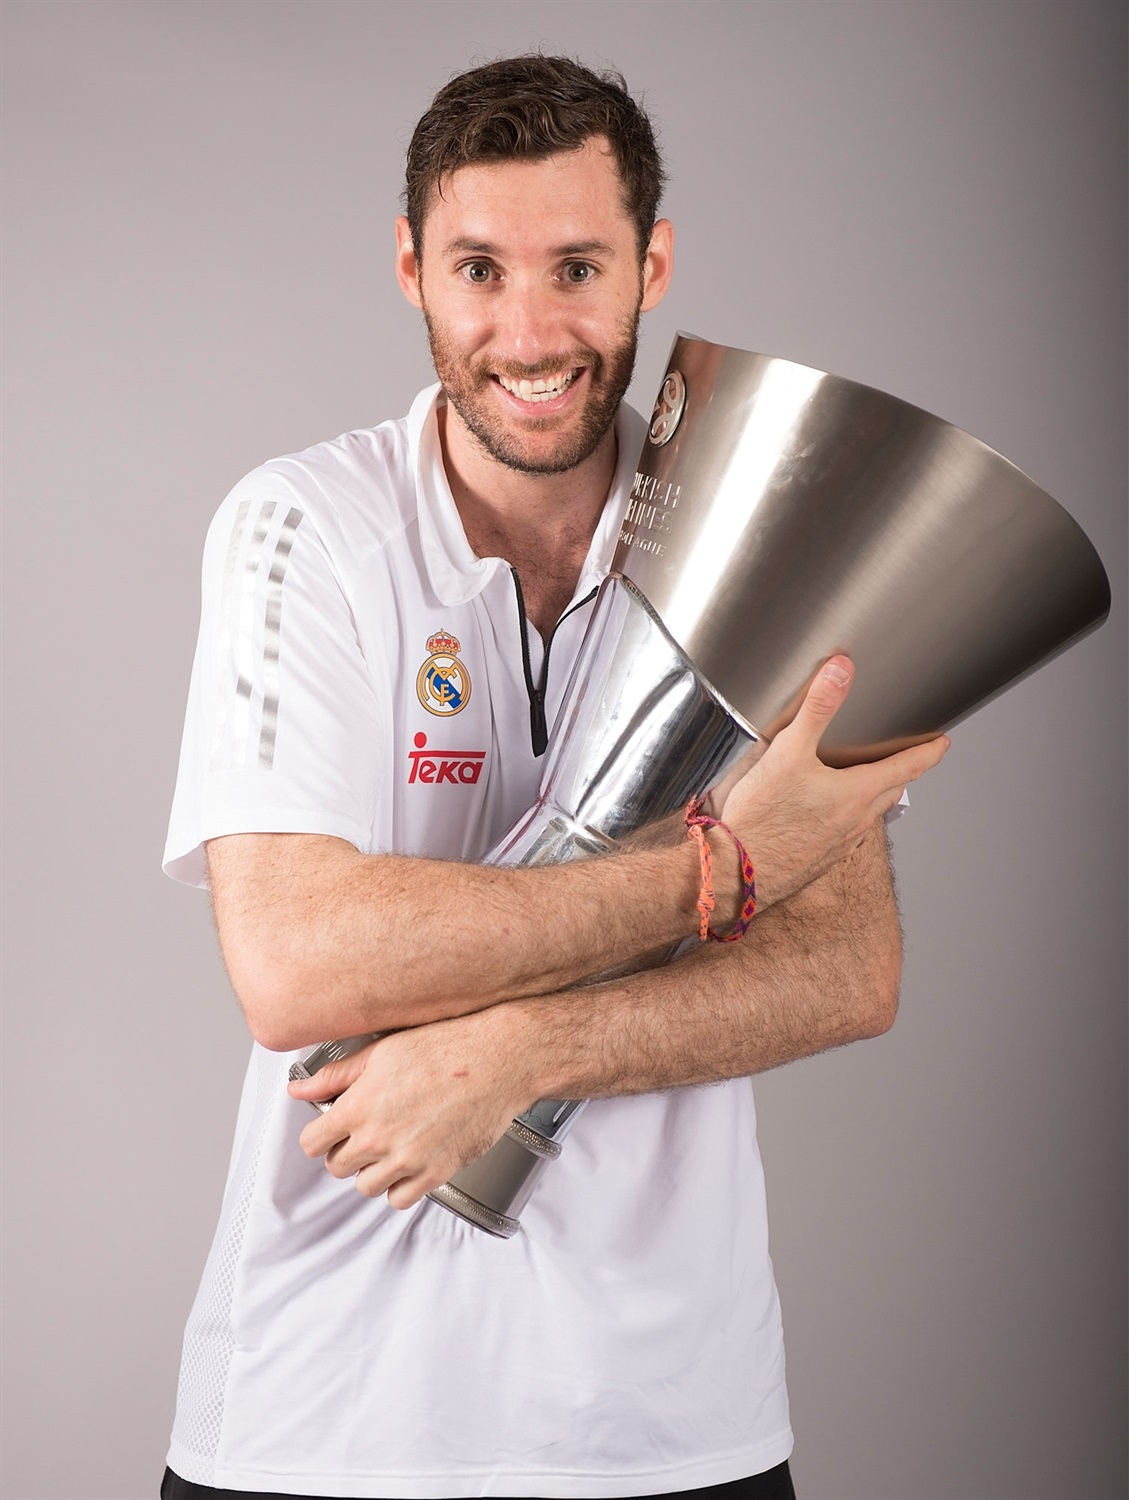 Rudy Fernandez - Trophy champ photo shoot - Final Four Madrid 2015 - EB14